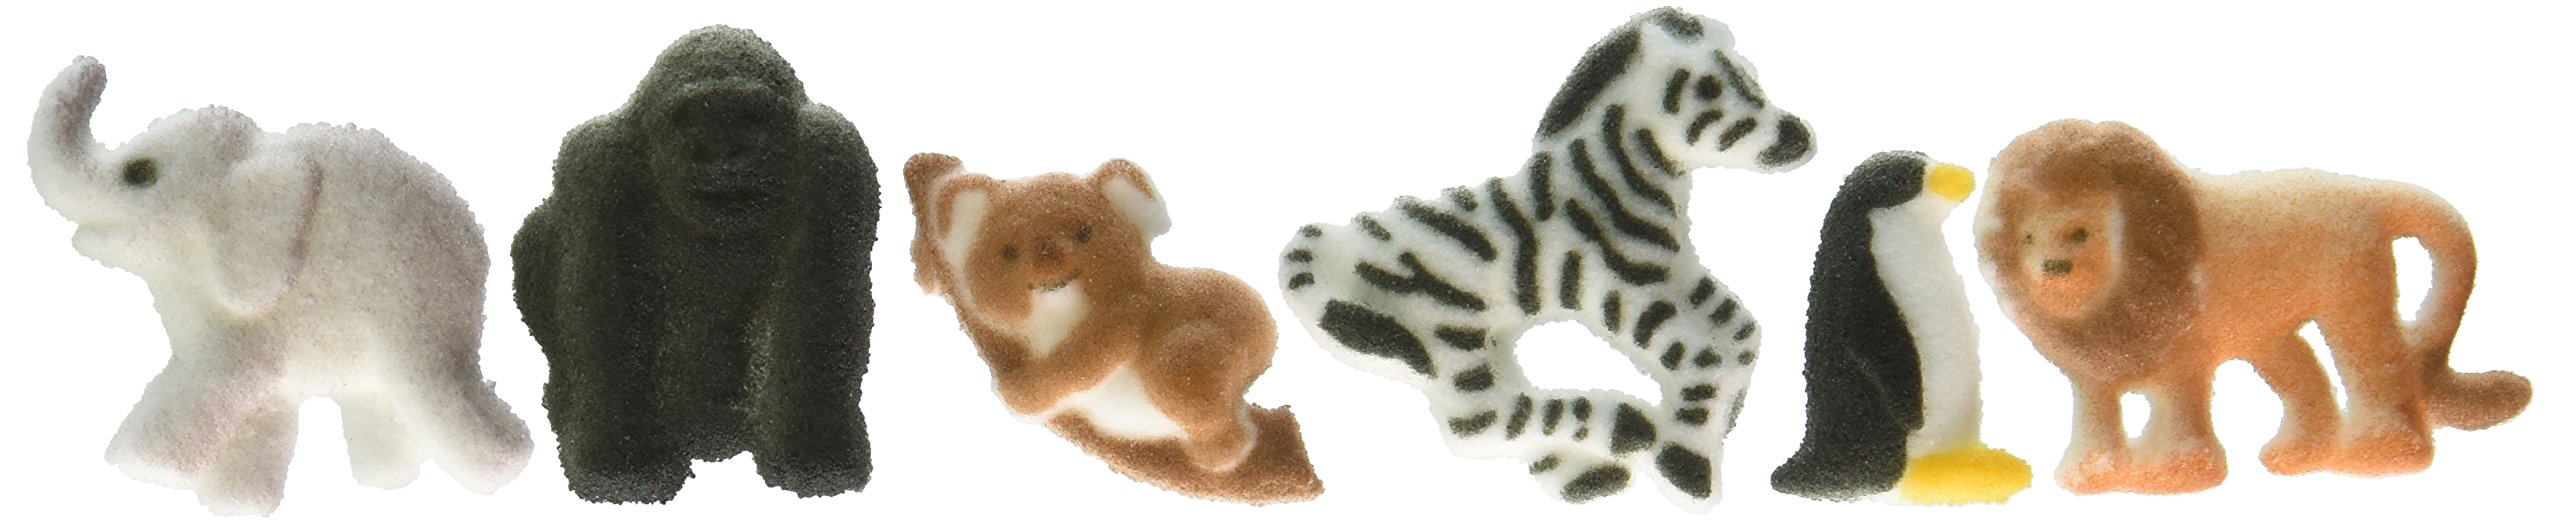 Lucks Dec-Ons Molded Sugar Cupcake Topper, Mini Zoo Animals Assortment, 1 - 1 5/8 Inch, 120 Count